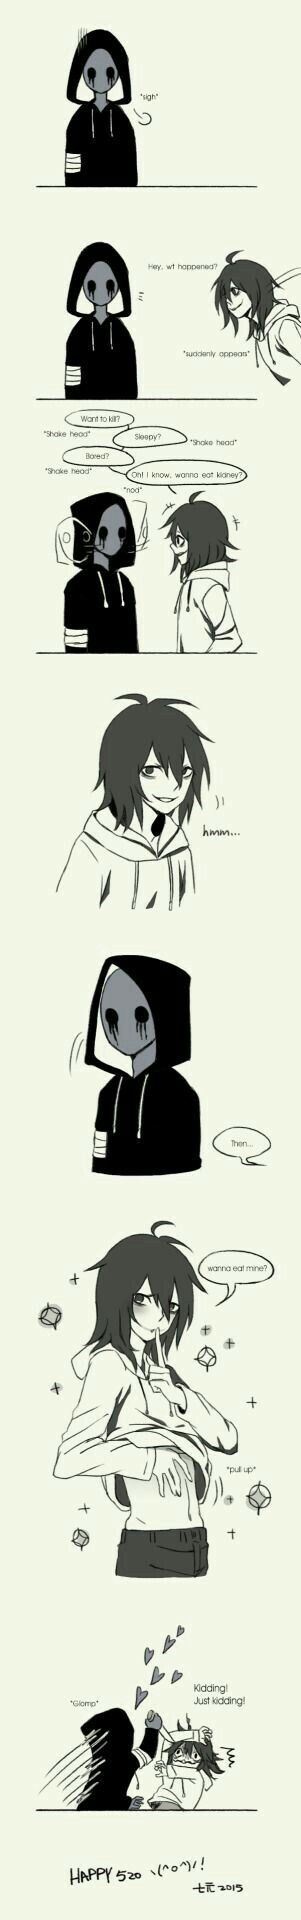 Eyeless Jack, Jeff the Killer, funny, text, comic, yaoi; Creepypasta